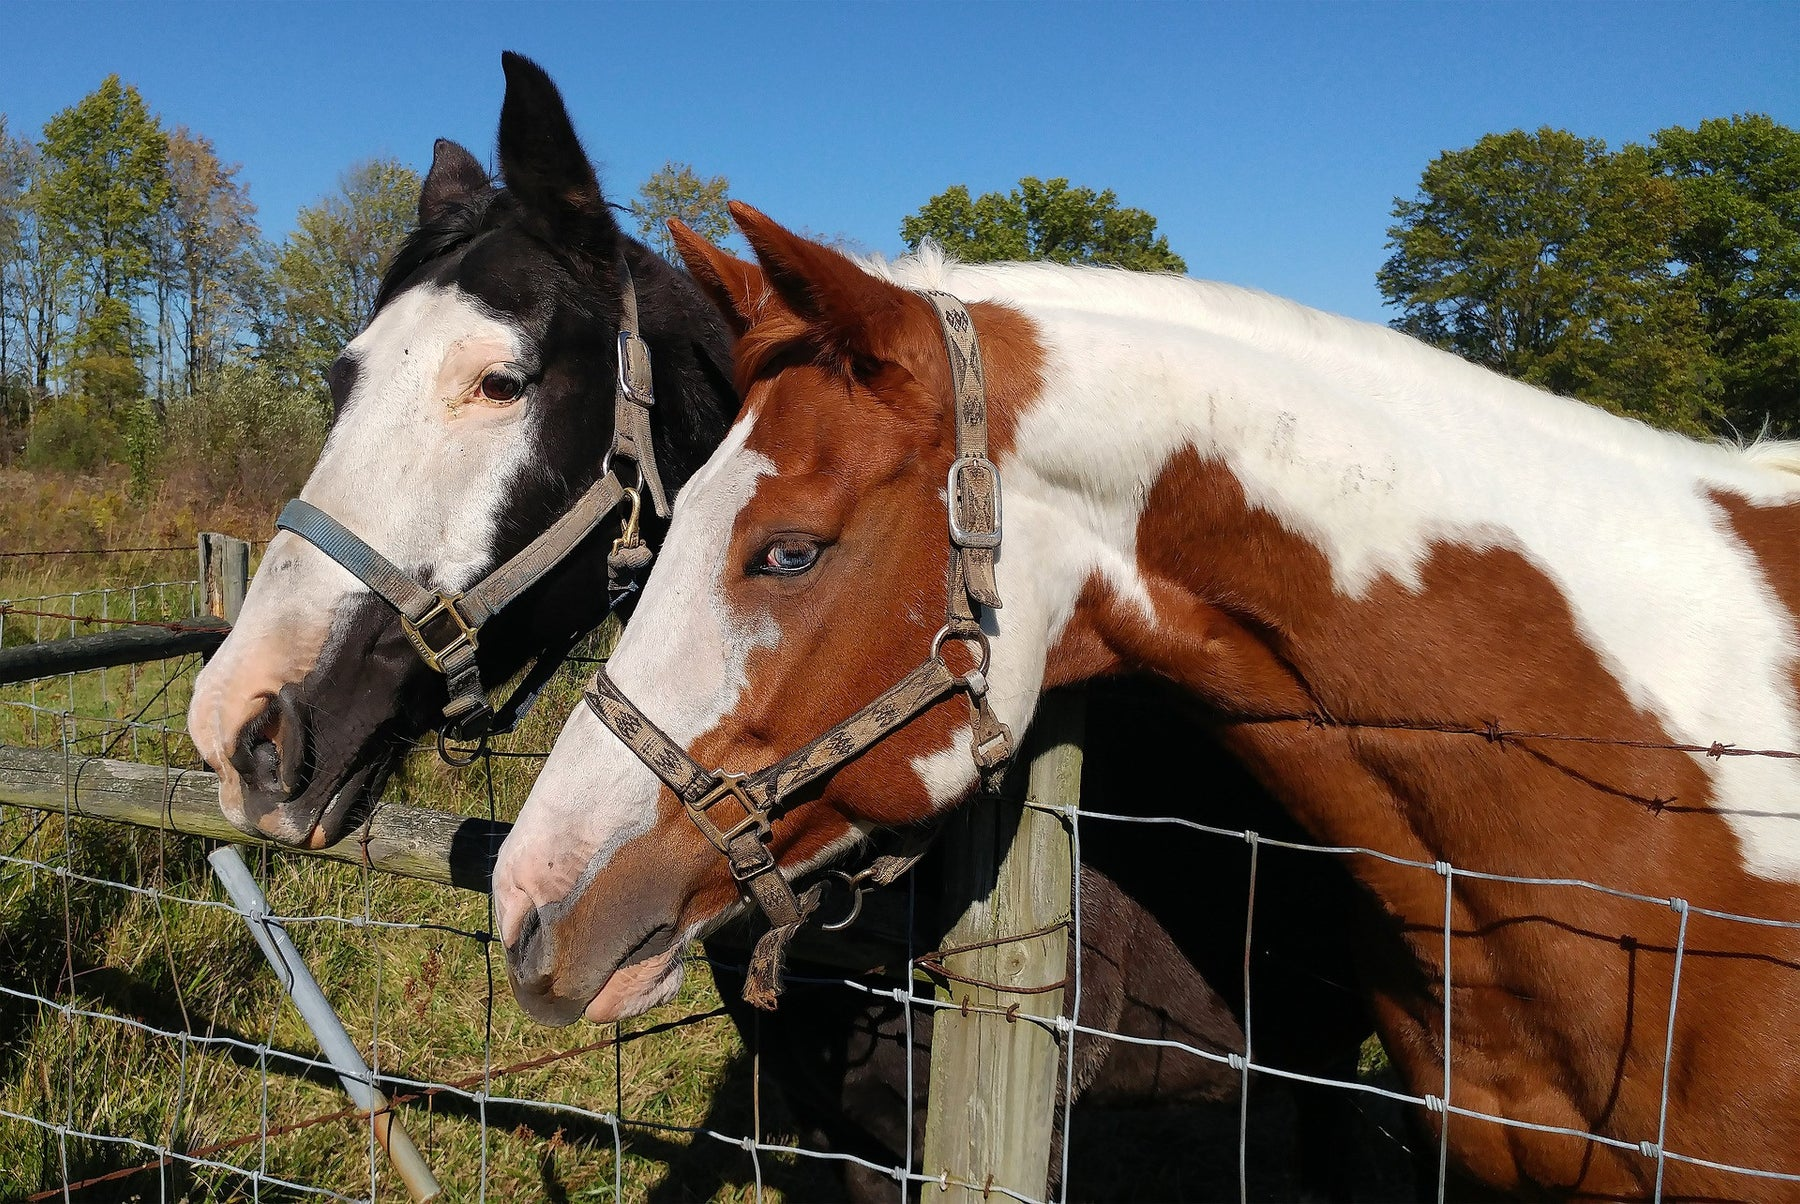 Researchers Teach Horses to Communicate with Symbols